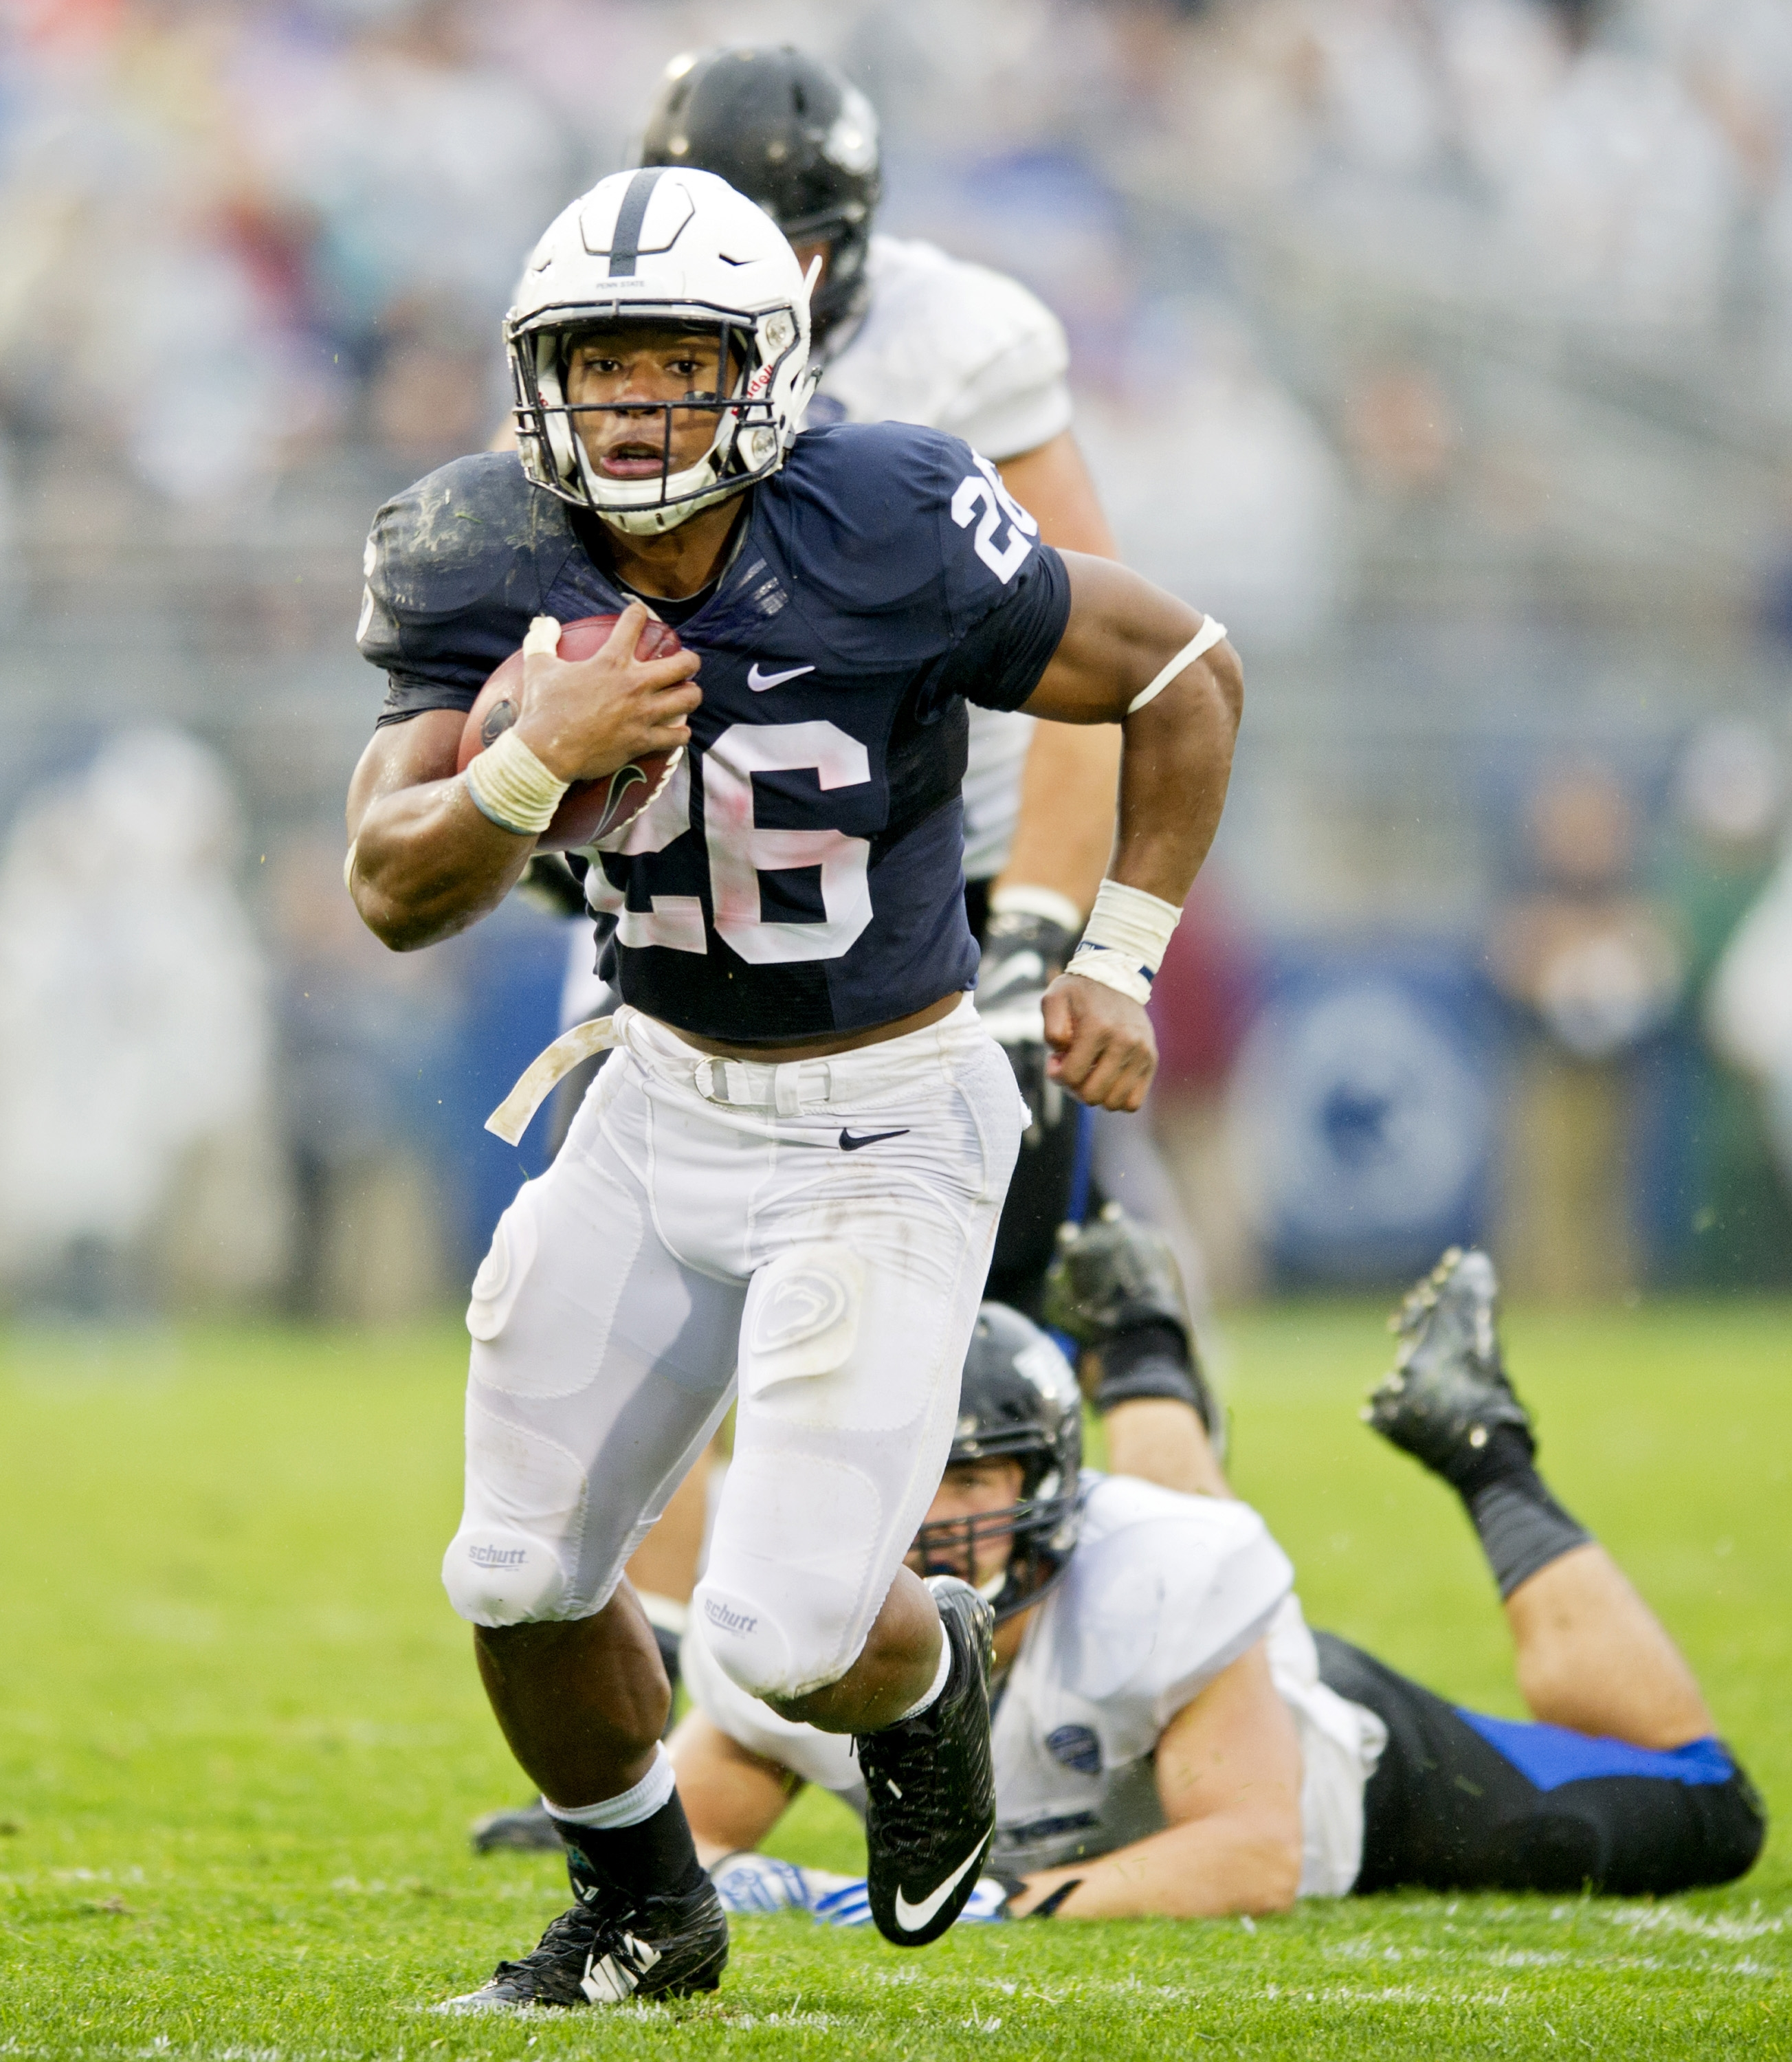 Speed ruled as Penn State running back Saquon Barkley tormented UB defenders during the fourth quarter, when he ran eight times for 101 yards to help the Nittany Lions put the game away.